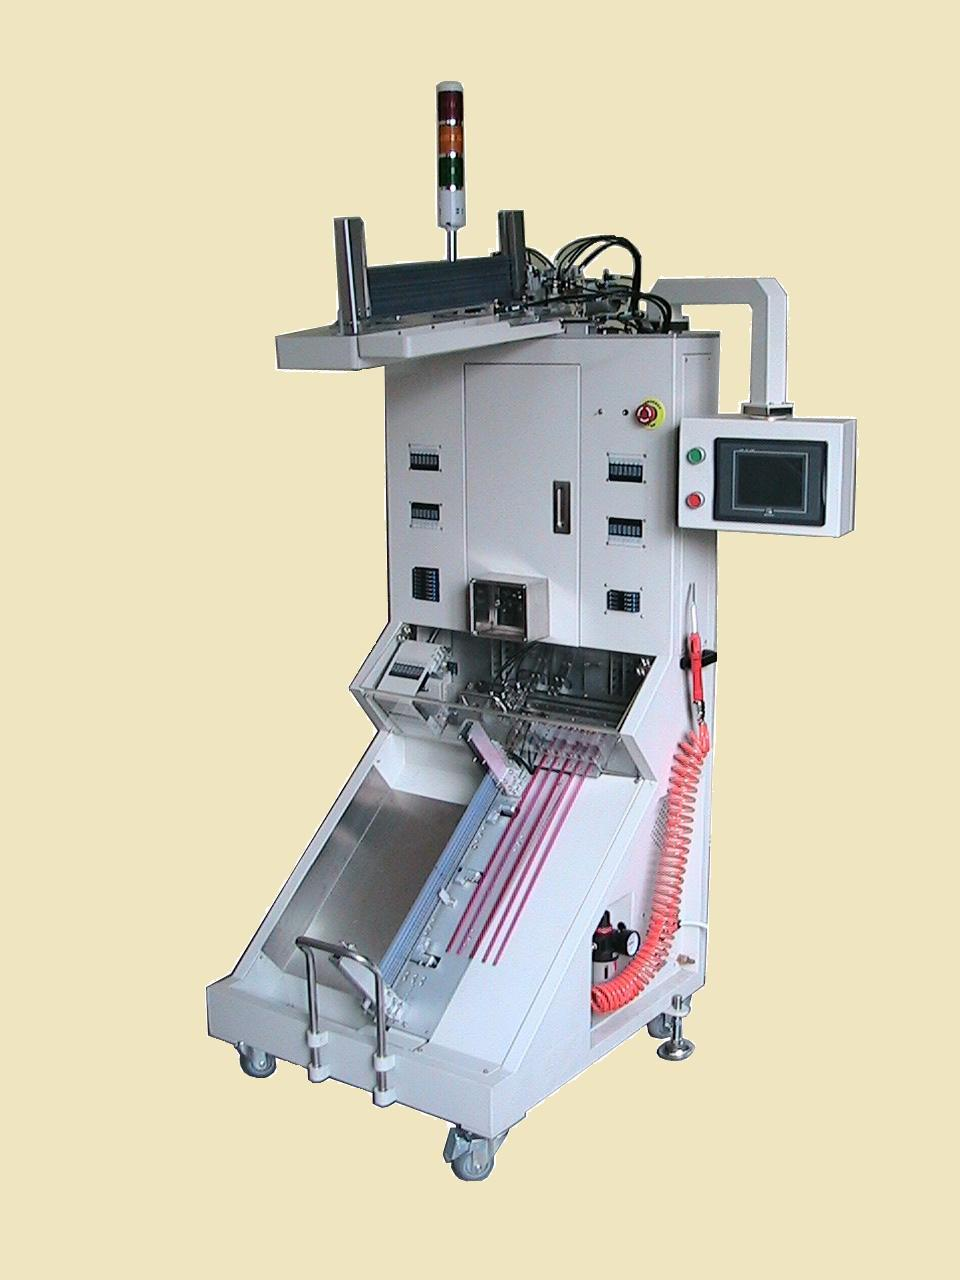 Semiconductor Test Equipment : Used semiconductor equipment by mektra handlers testers